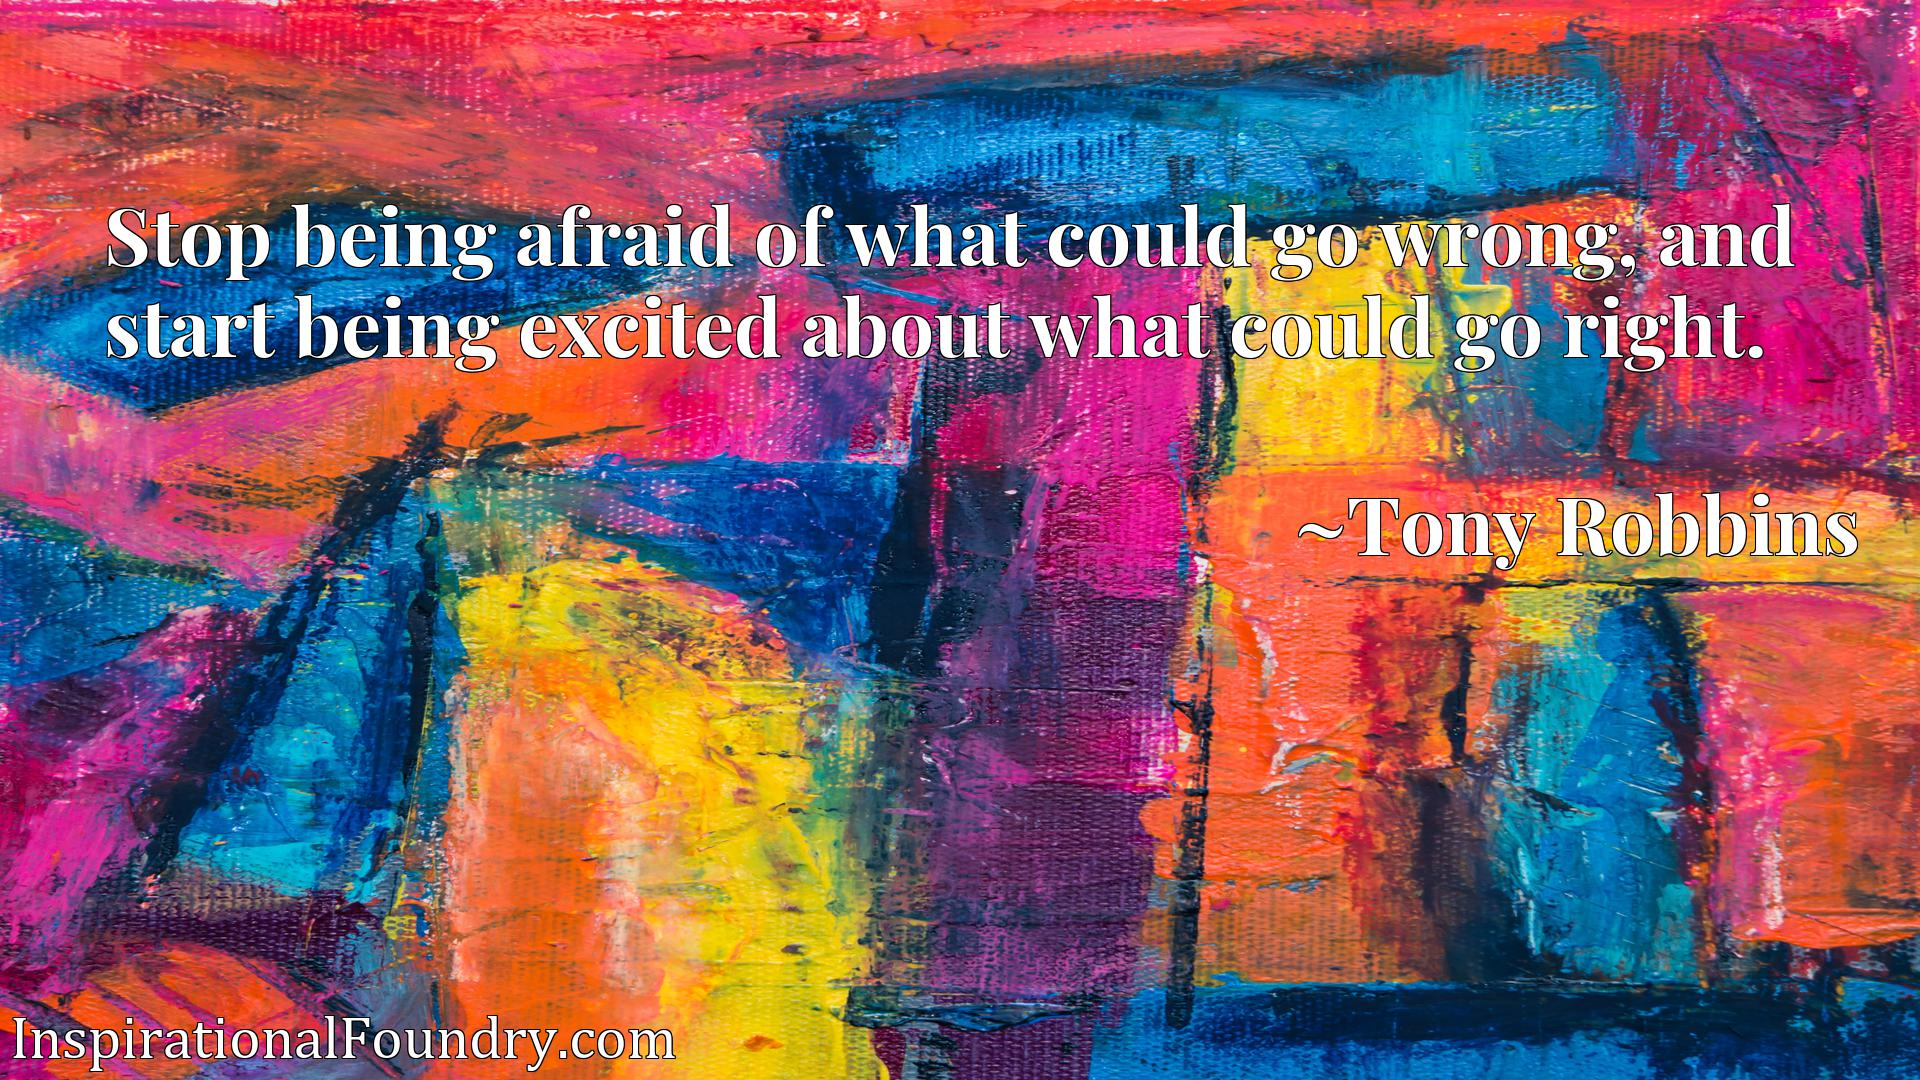 Stop being afraid of what could go wrong, and start being excited about what could go right.